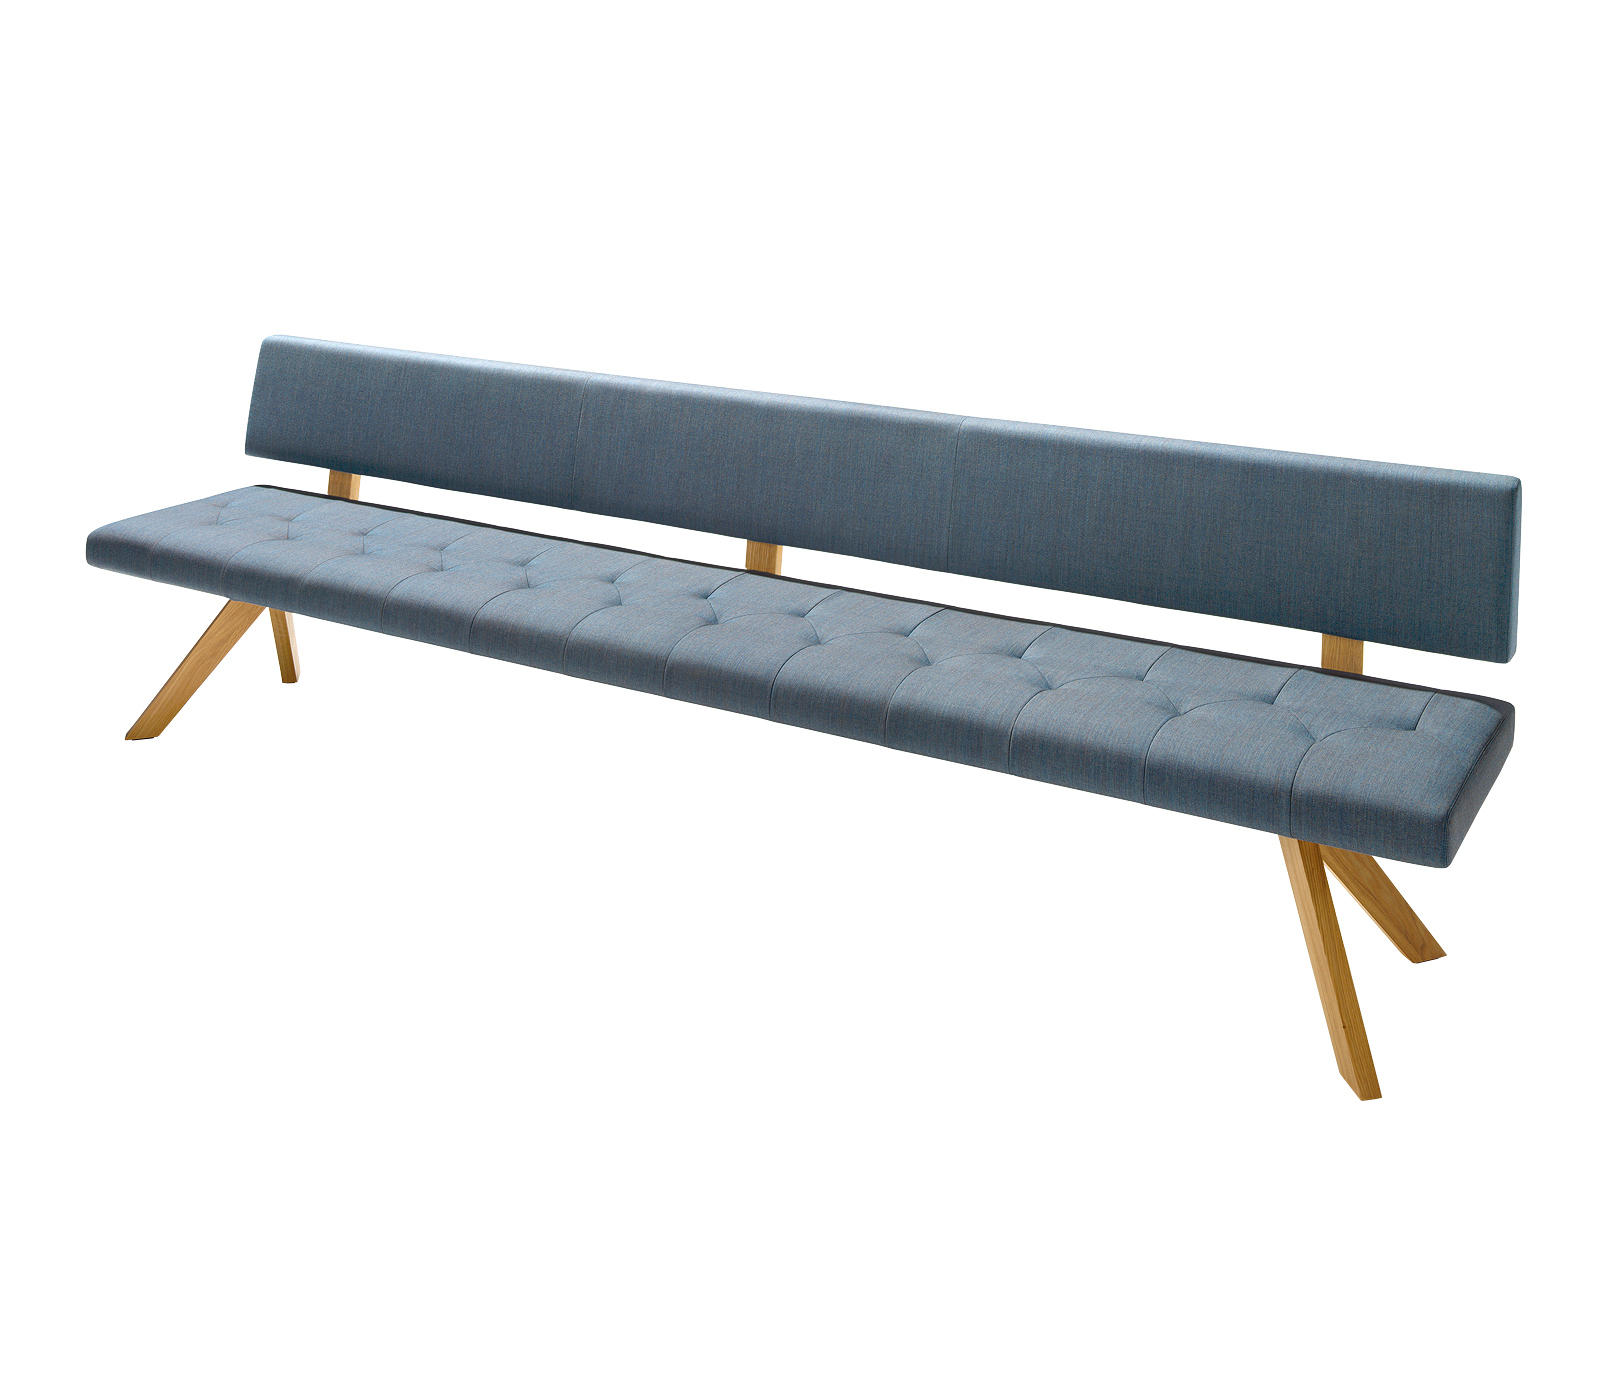 Yps bench benches from team 7 architonic - Banc pour table a manger ...